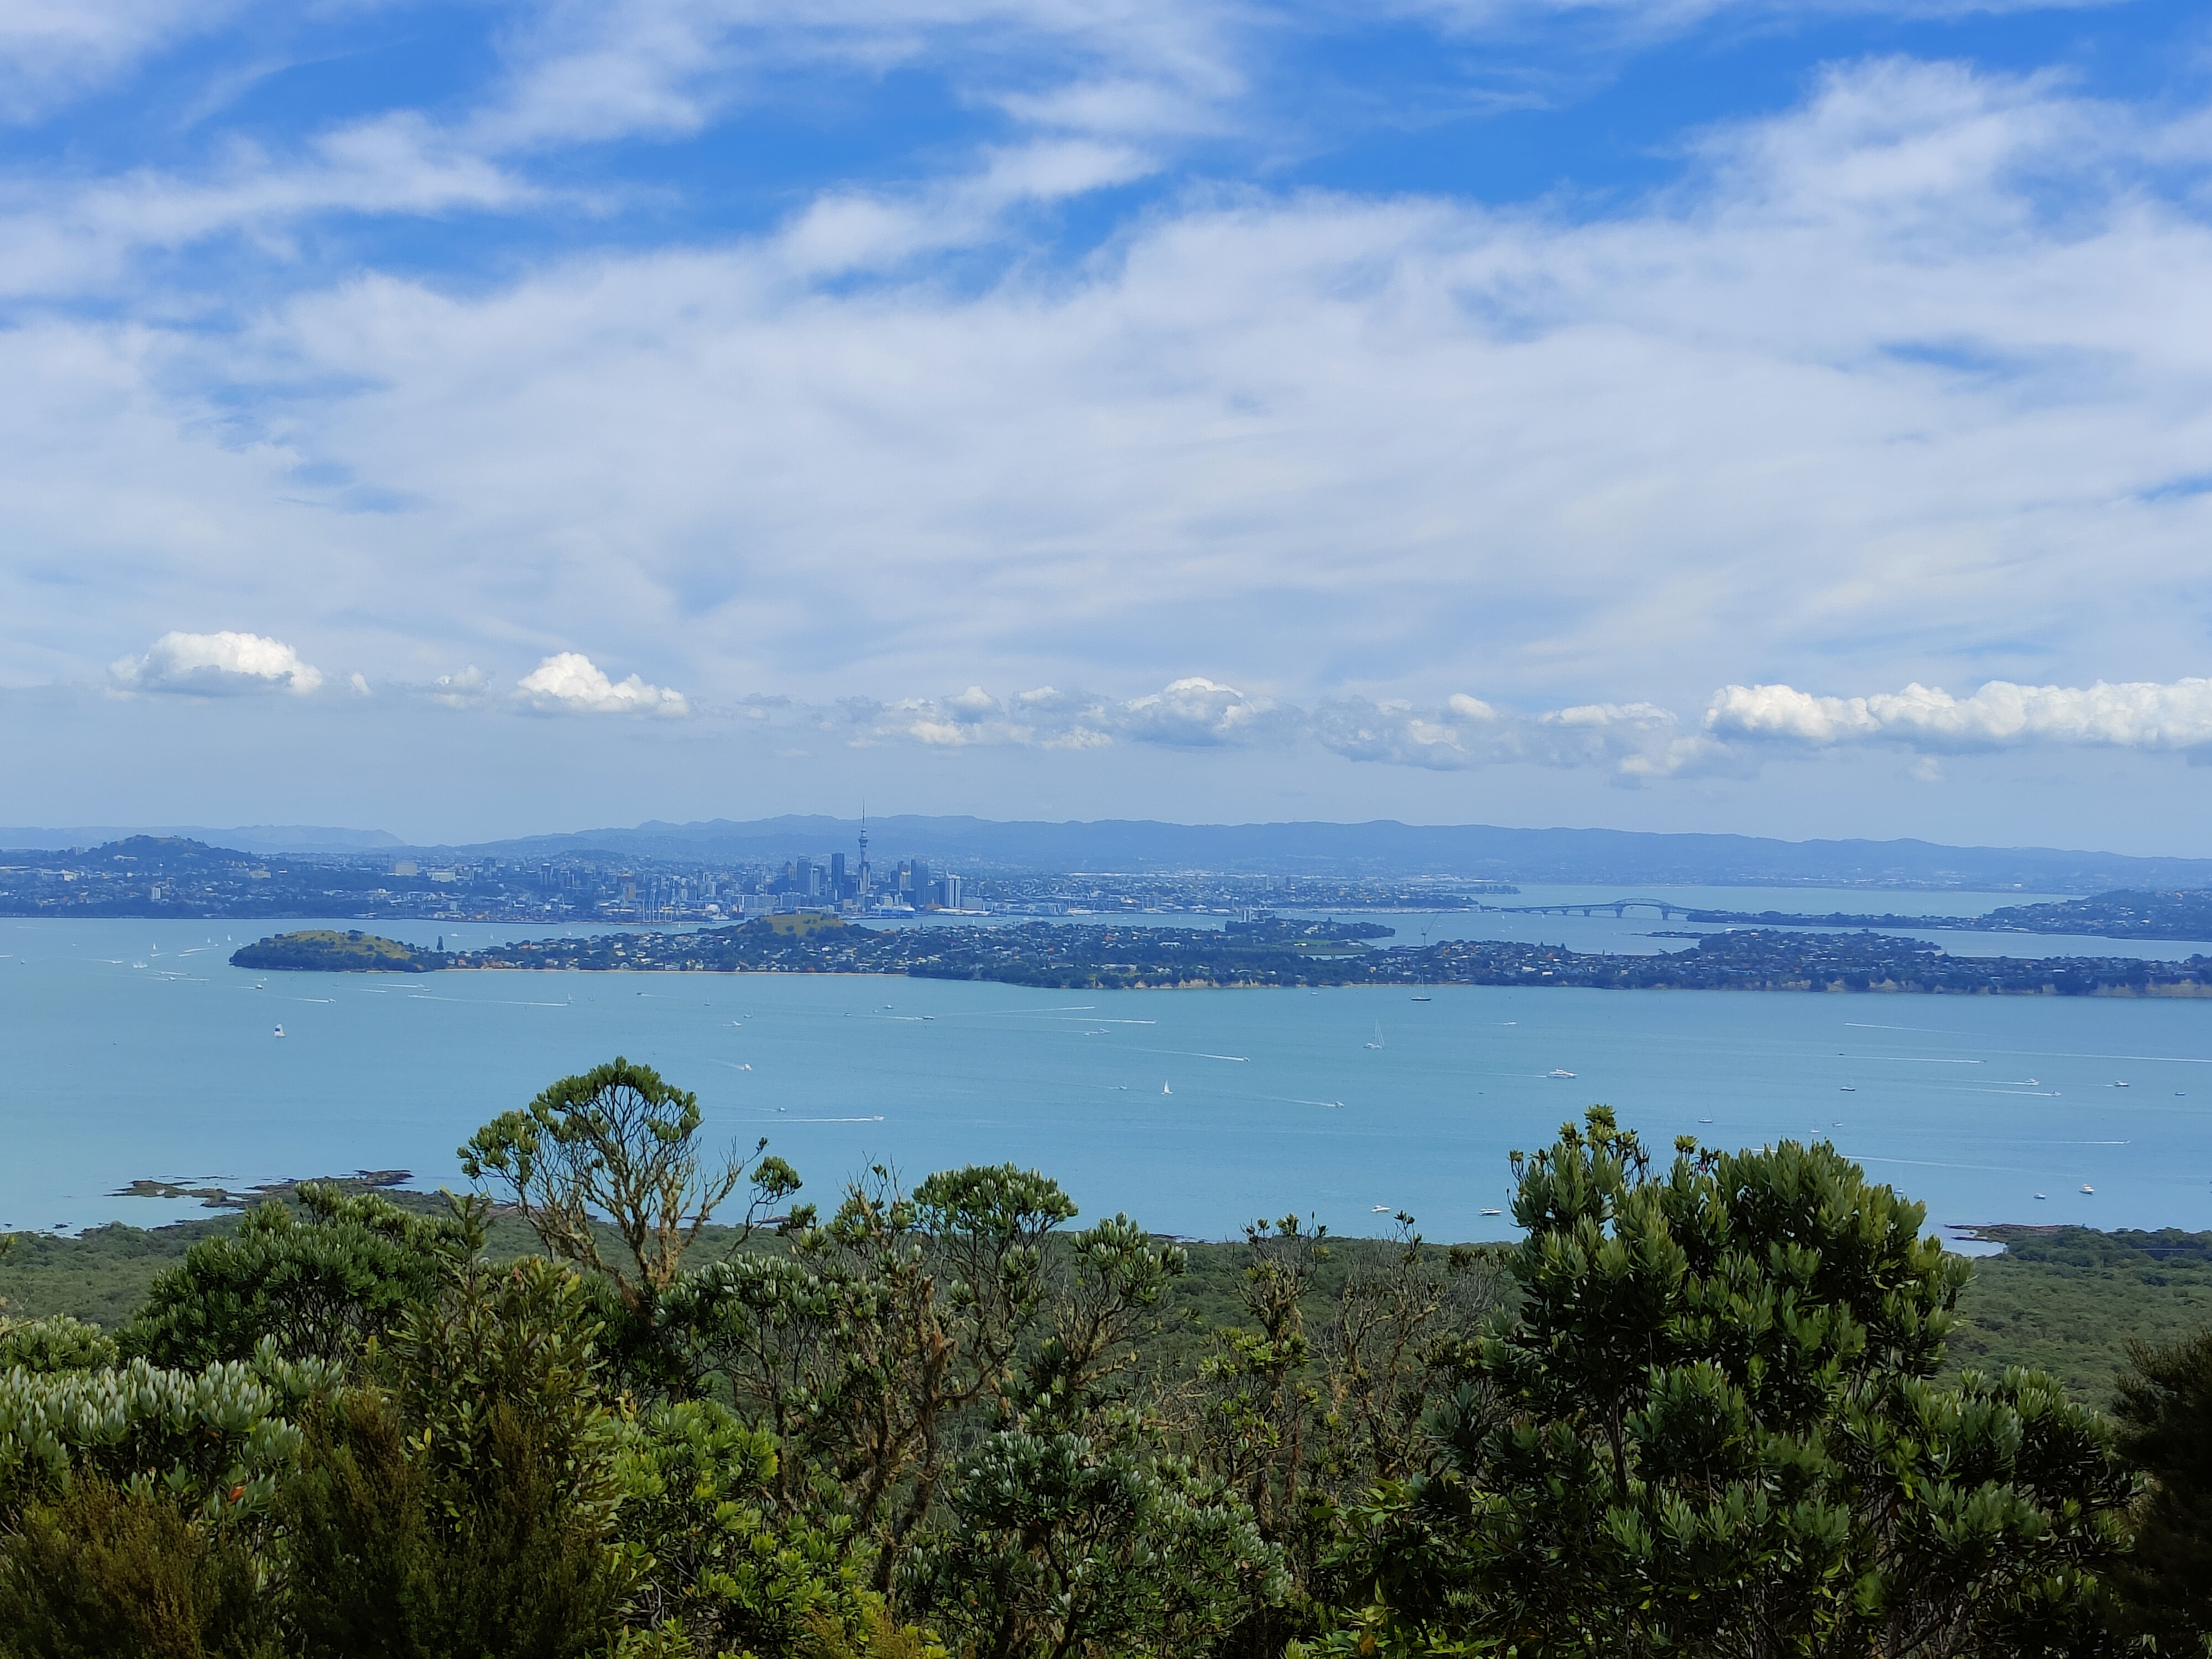 Looking to Auckland city from Rangitoto Island's summit